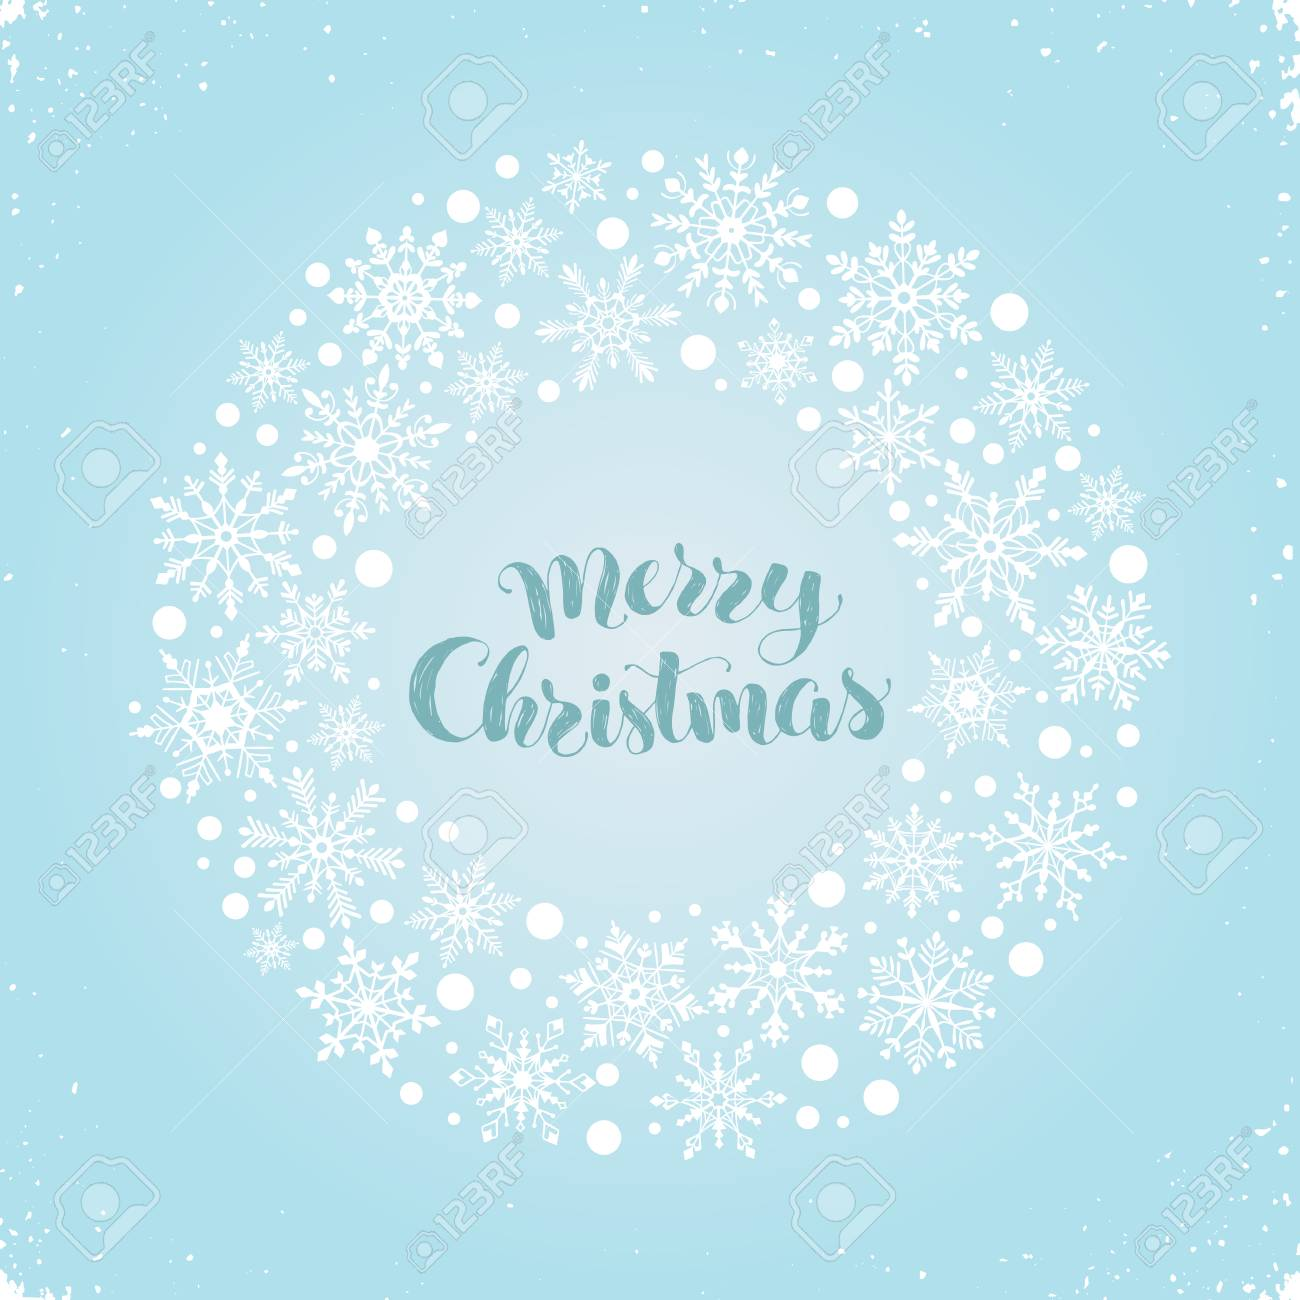 Merry Christmas Greeting Card Template Modern Winter Holidays